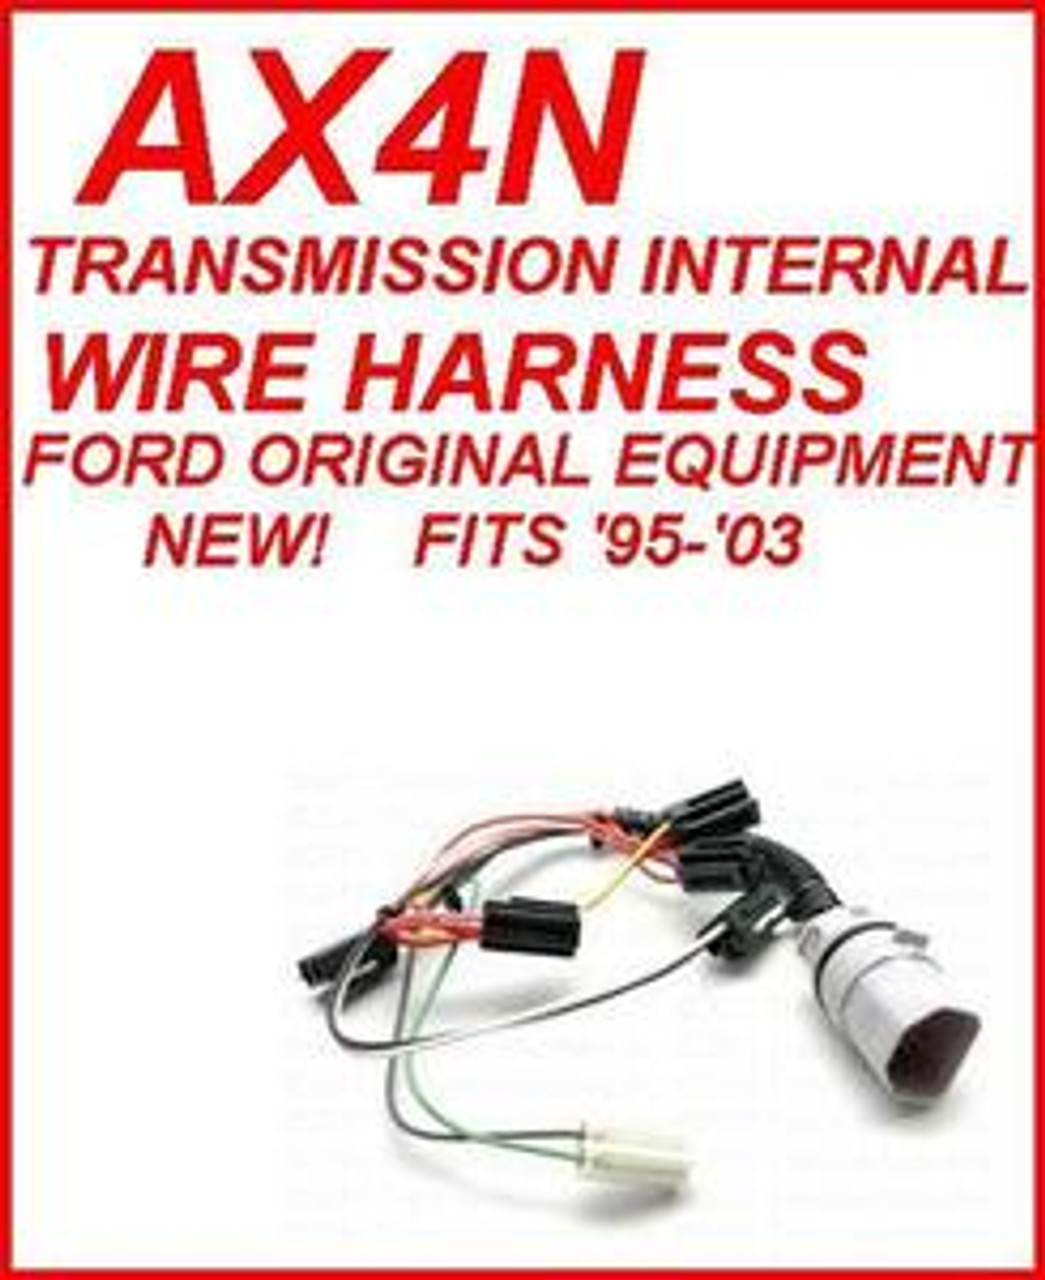 AX4N 4F50N FORD TRANSMISSION INTERNAL WIRE HARNESS NEW ORIGINAL EQUIPMENT  FITS '95-'03 - Transmission Parts Distributors